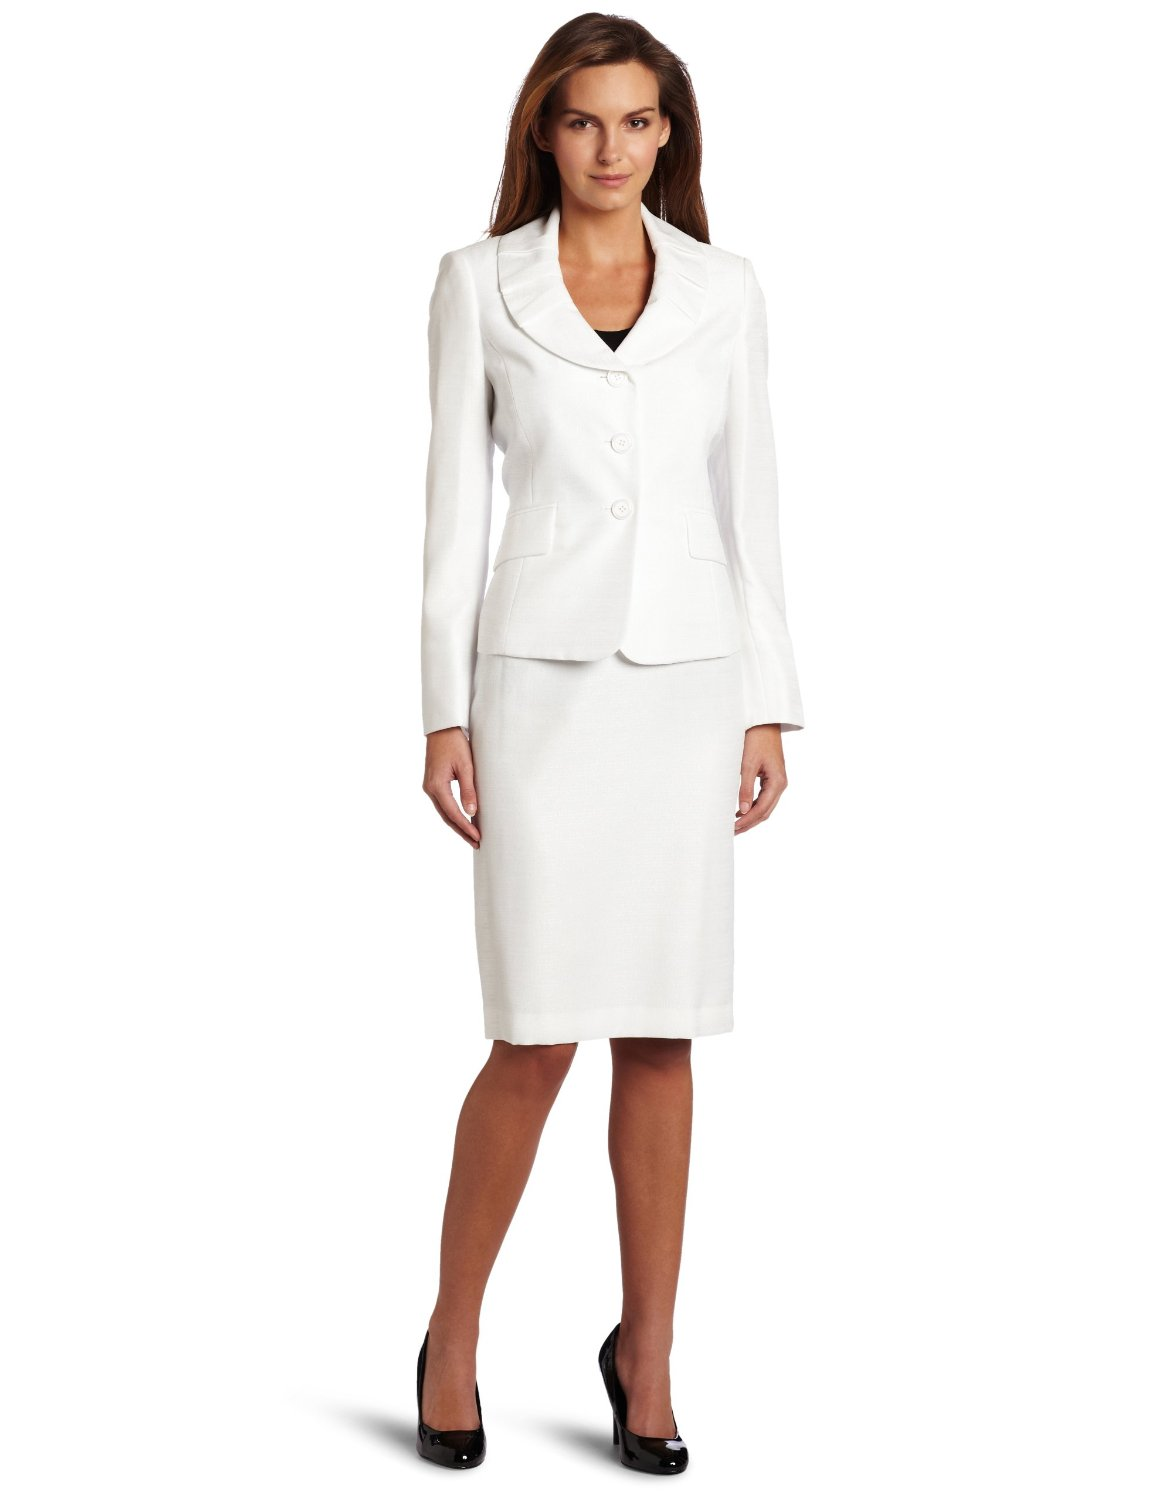 Luxury Business Casual Guidelines For Men And Women Business Casual Is Crisp, Neat, And Should Look Appropriate Even For A Chance Meeting With A CEO It Should Not Look Like Cocktail Or Party Or Picnic Attire Avoid Tight Or Baggy Clothing